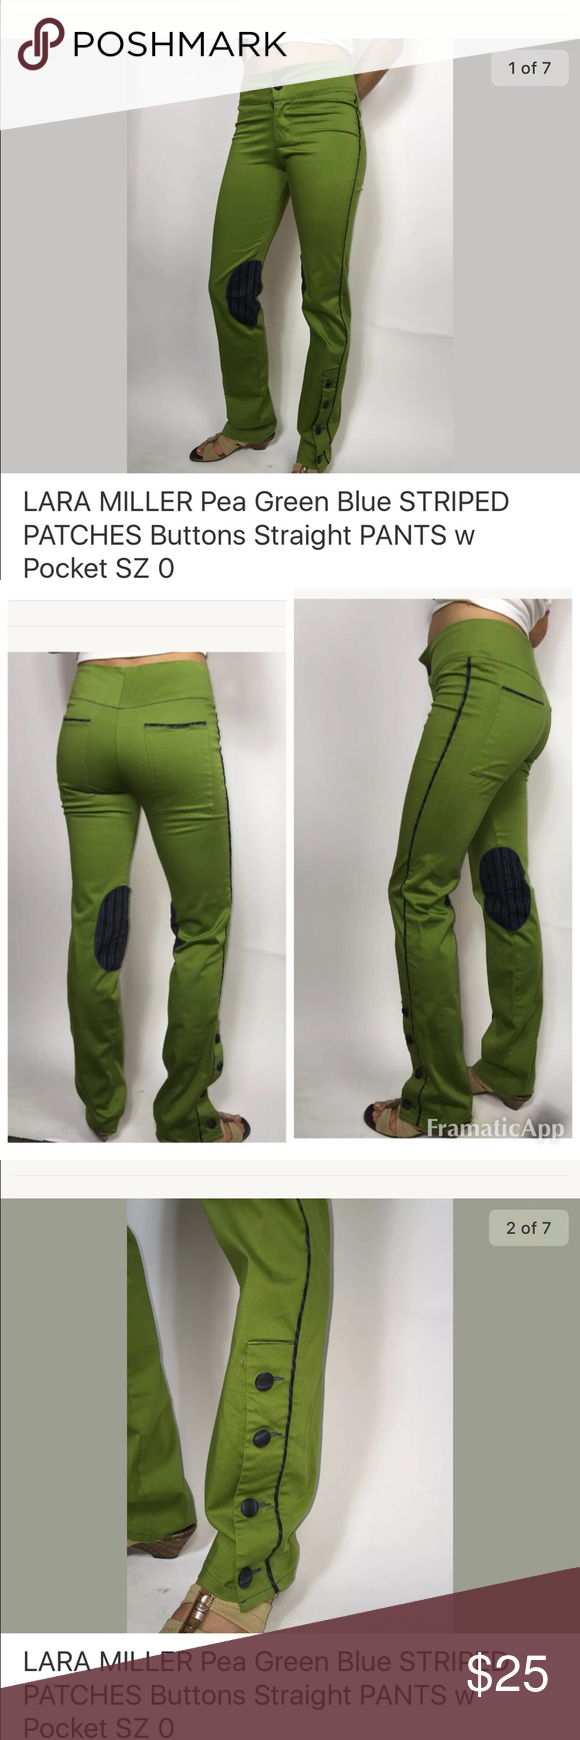 Pea Green Pants UNIQUE👍🏼 Great condition! Perfect, with no stains holes or snags. Shades of blue and black on patches.   70% Cotton 28% Nylon 4% Spandex  Inseam 33 inches * Waist 28 inches * Hips 32 inches  * Rise 9.5 inches Lara Miller Pants Straight Leg